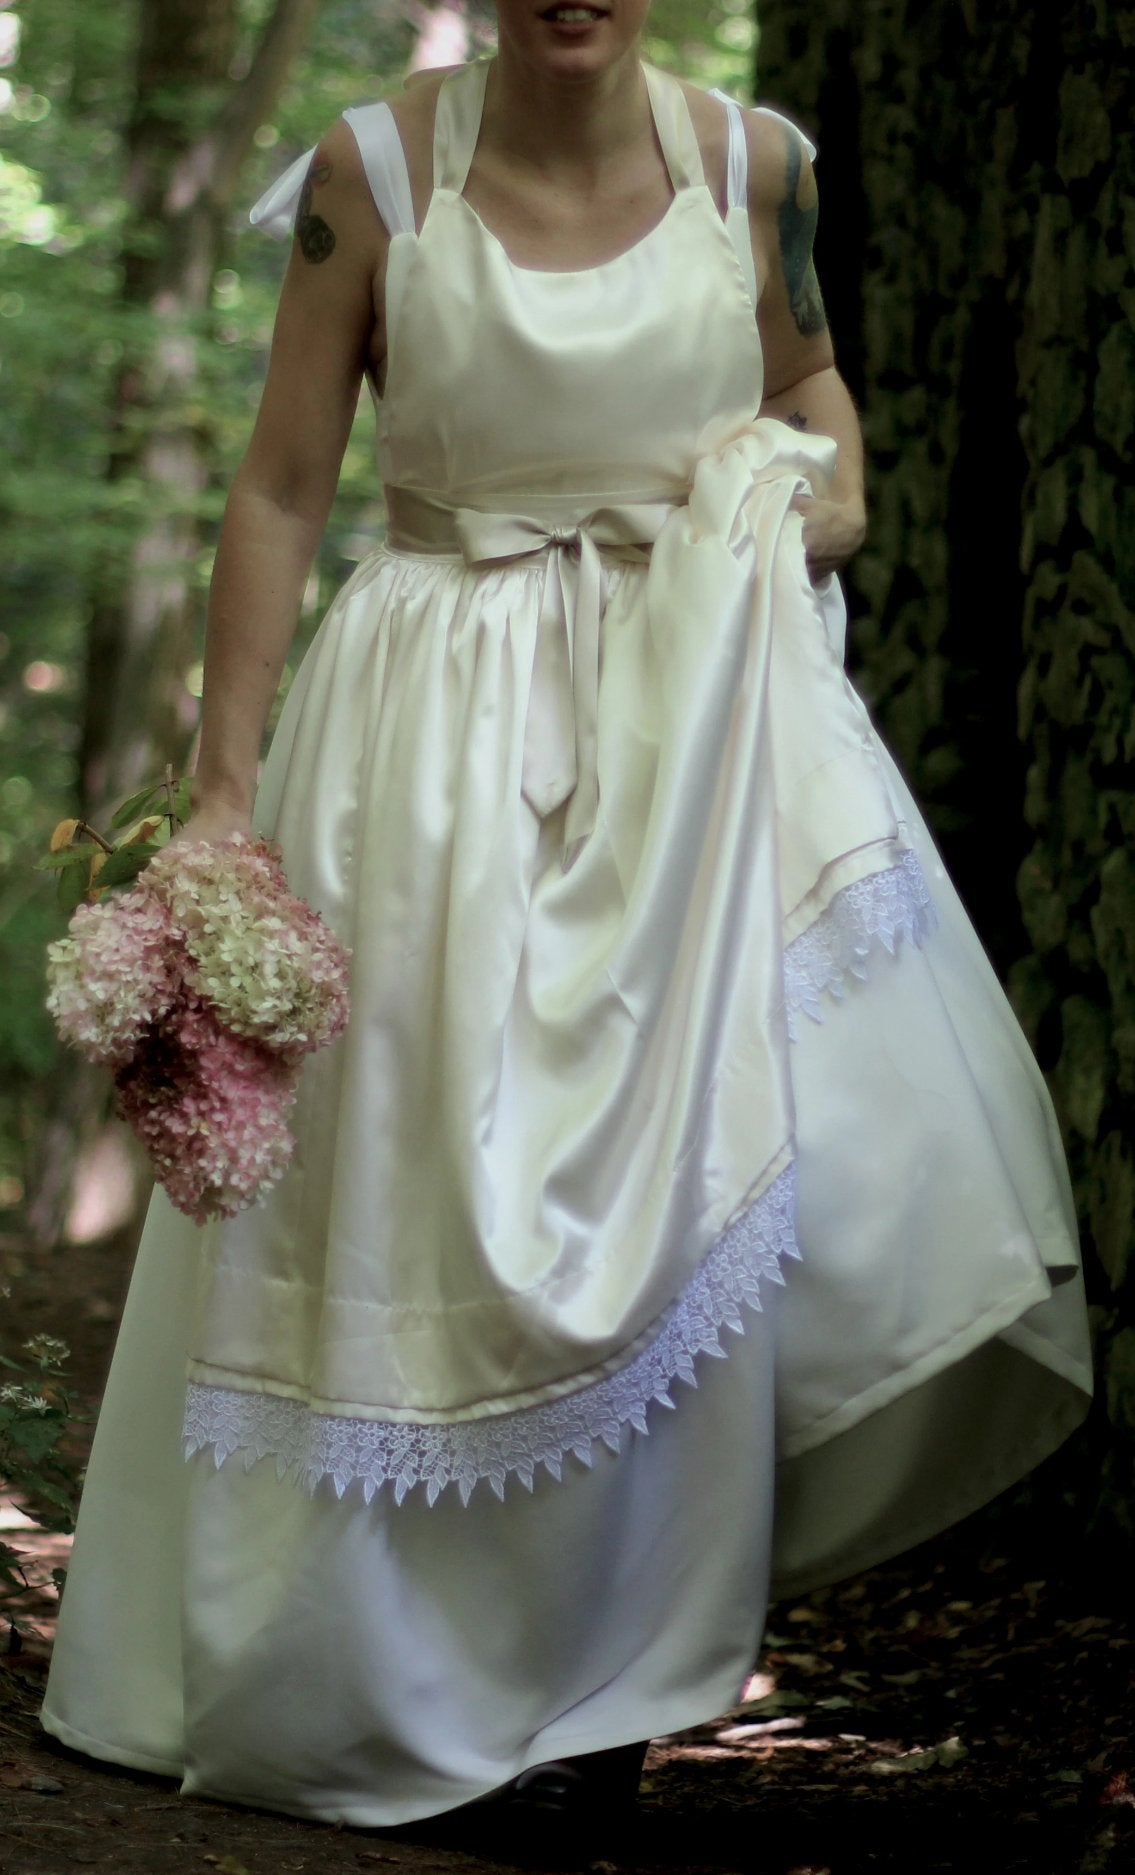 Bridal Apron in Satin, Pleats and Lace - front view 2